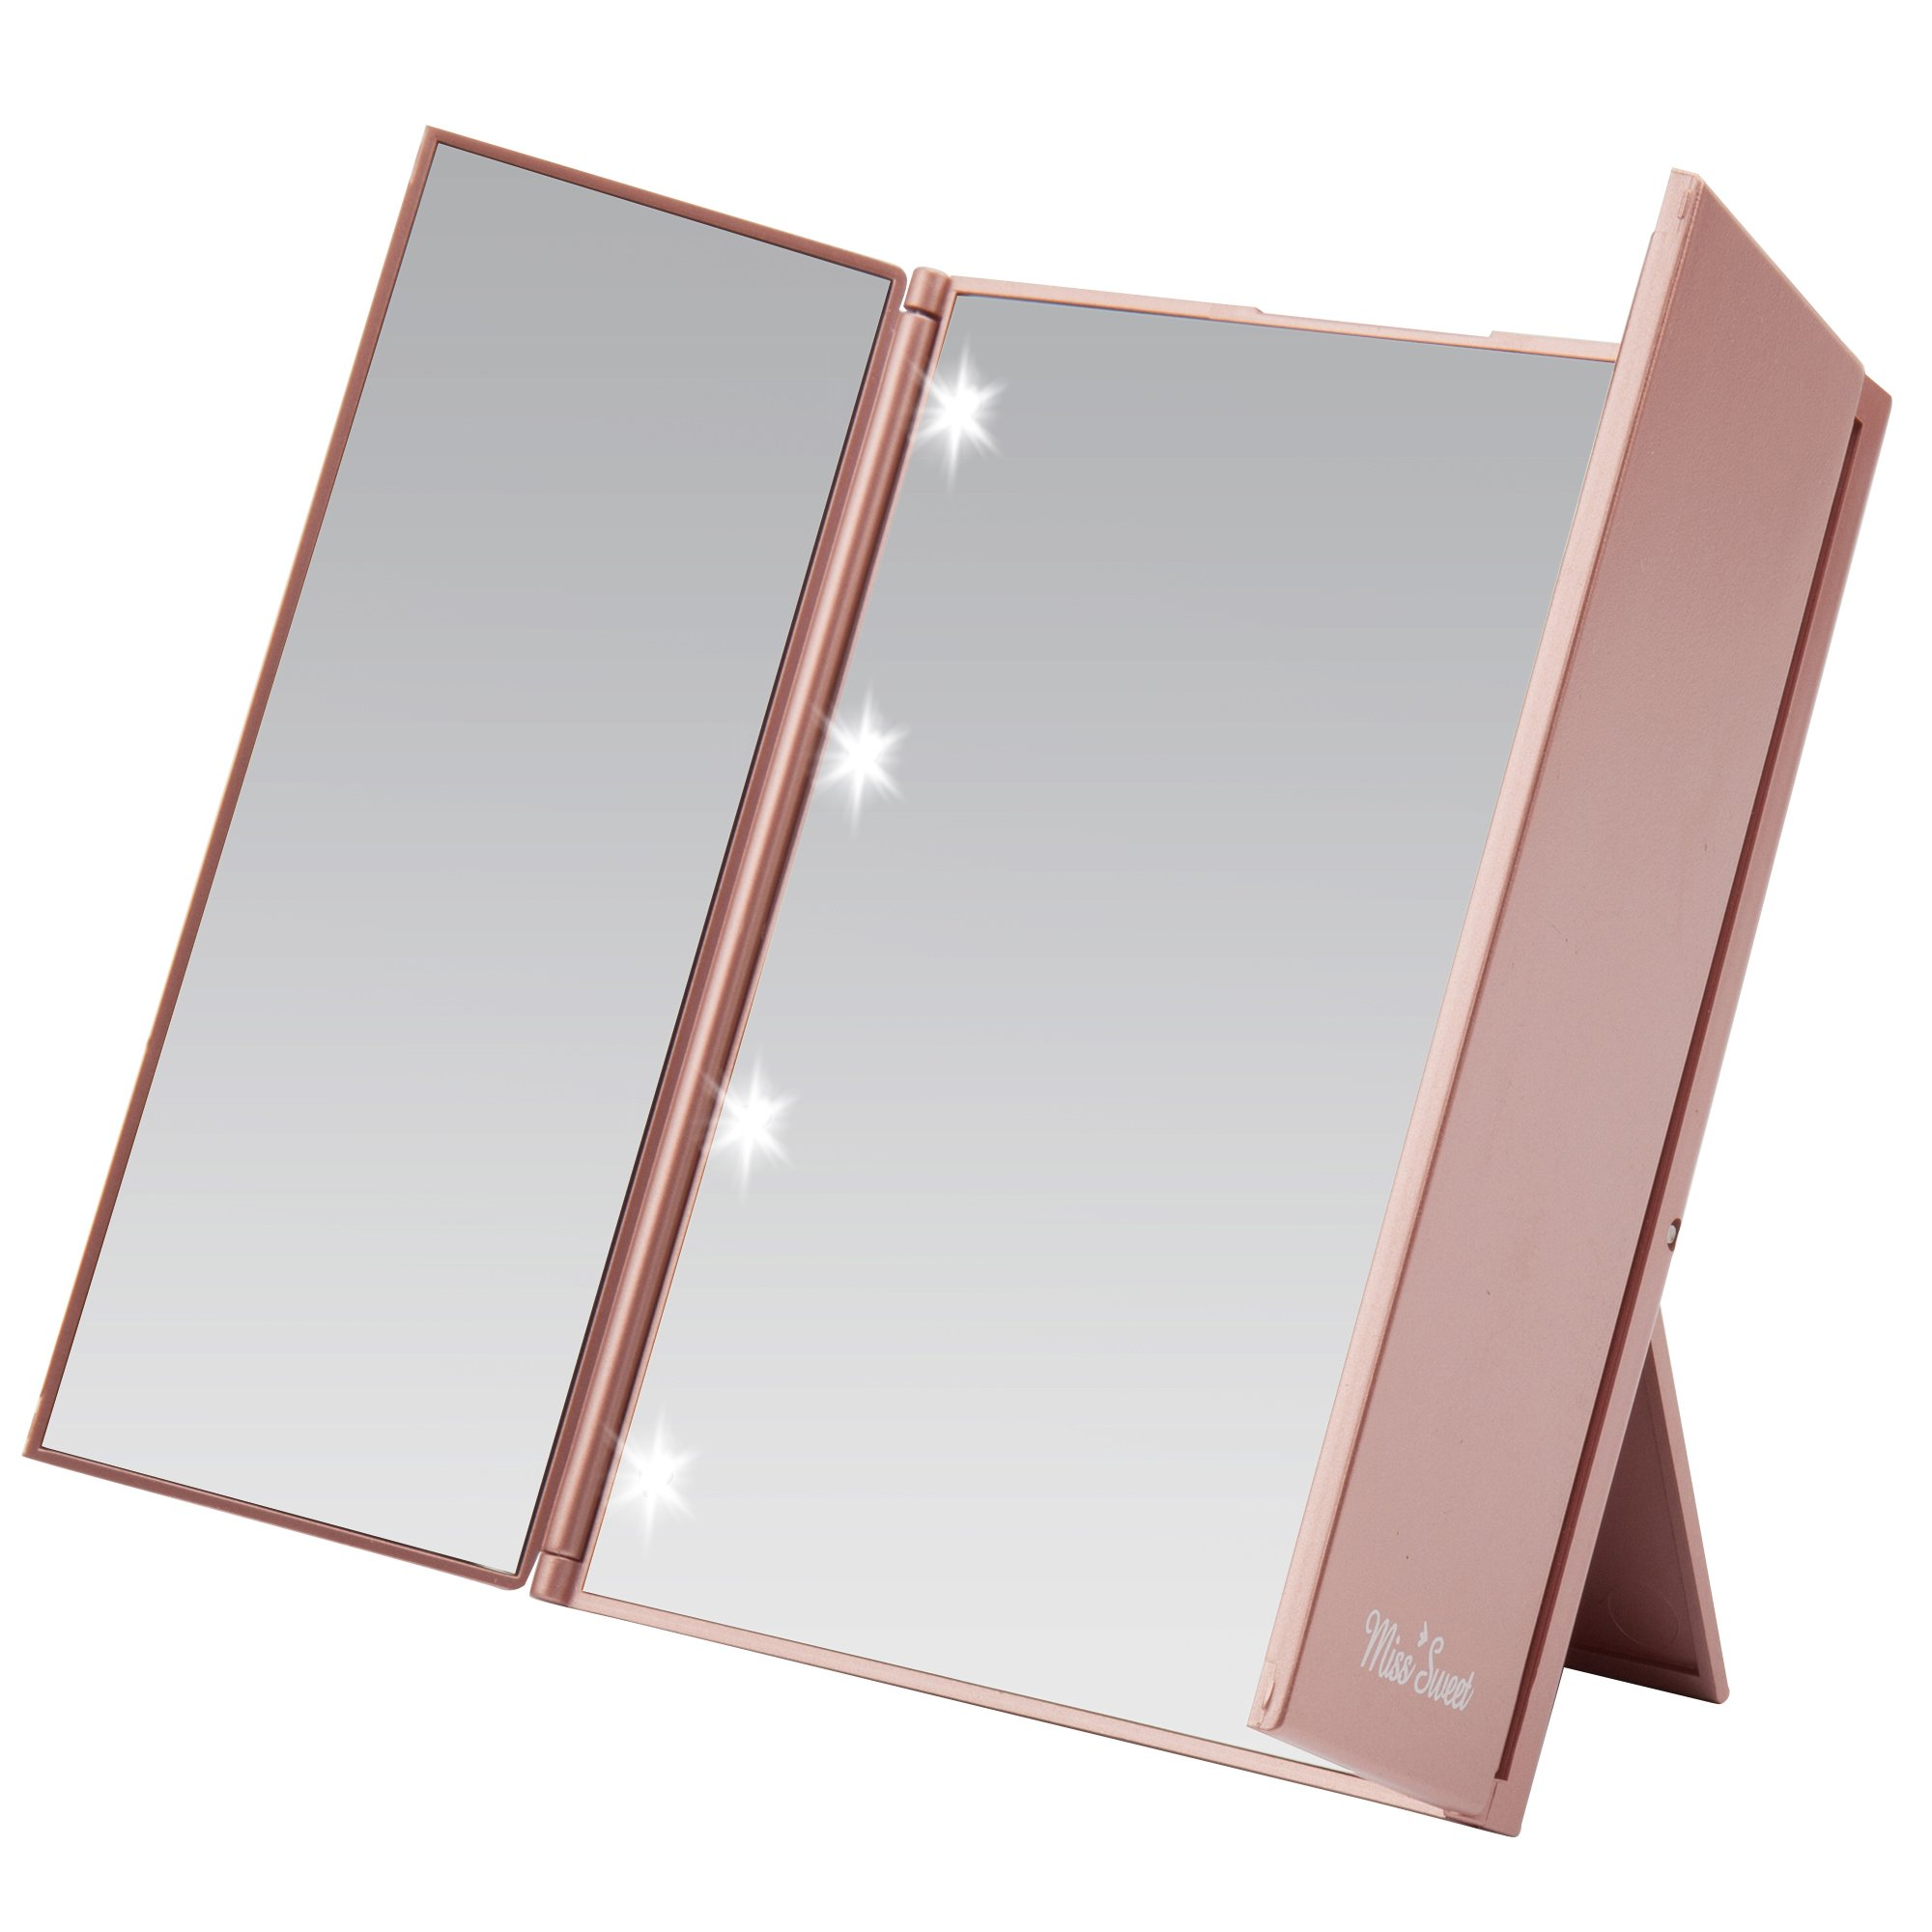 Miss Sweet Led Lighted Tri-Fold Makeup Mirror Travel Mirror Compact Pocket Mirror Compact Mirror for Cosmetic Makeup (Gold Rose)